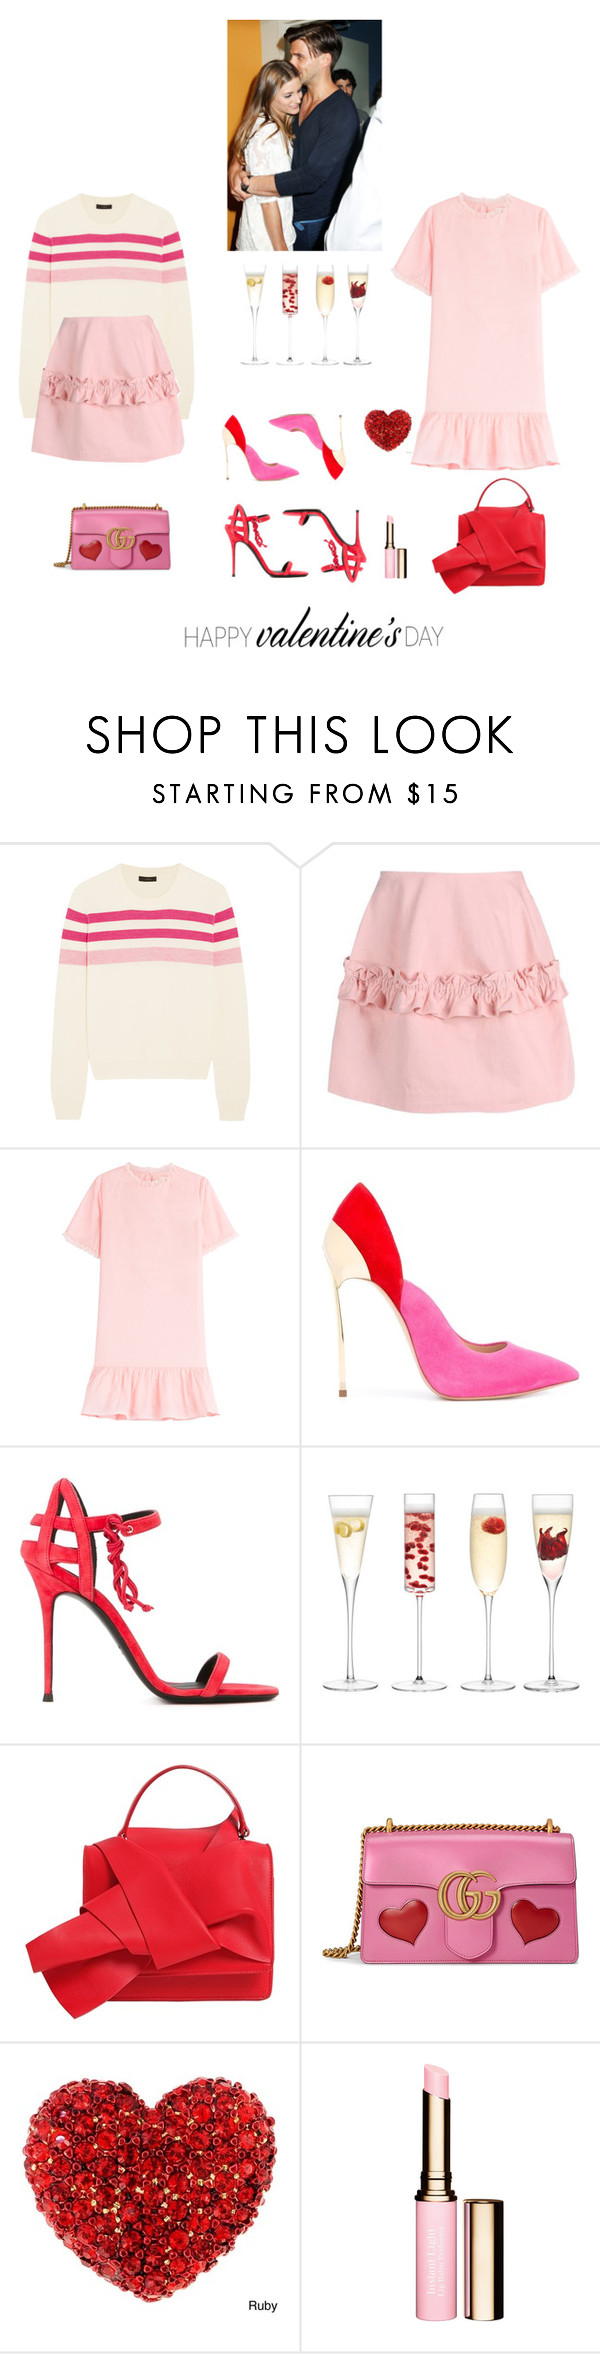 """Hearts all over the world tonight"" by rikka-alicia ❤ liked on Polyvore featuring J.Crew, Vanessa Bruno Athé, Casadei, Giuseppe Zanotti, LSA International, N°21, Gucci, Pink, red and OliviaPalermo"